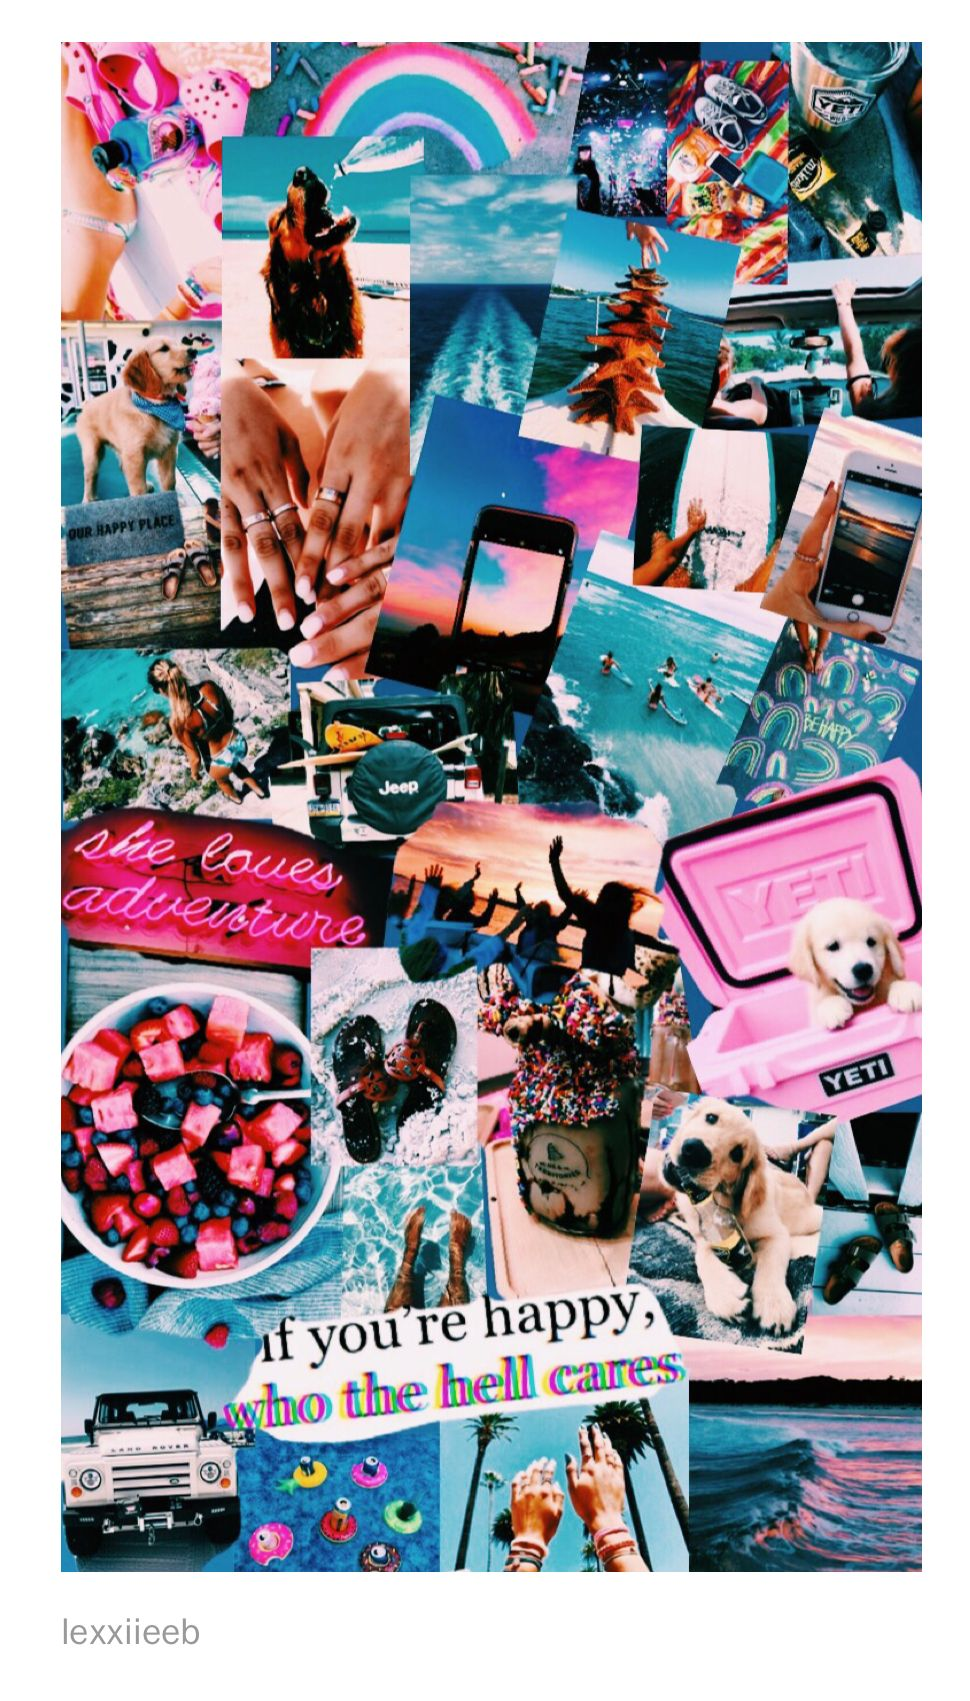 Pin by Moda Sweet on libro de inspiracion | Iphone wallpaper, Aesthetic wallpapers, Collage ...